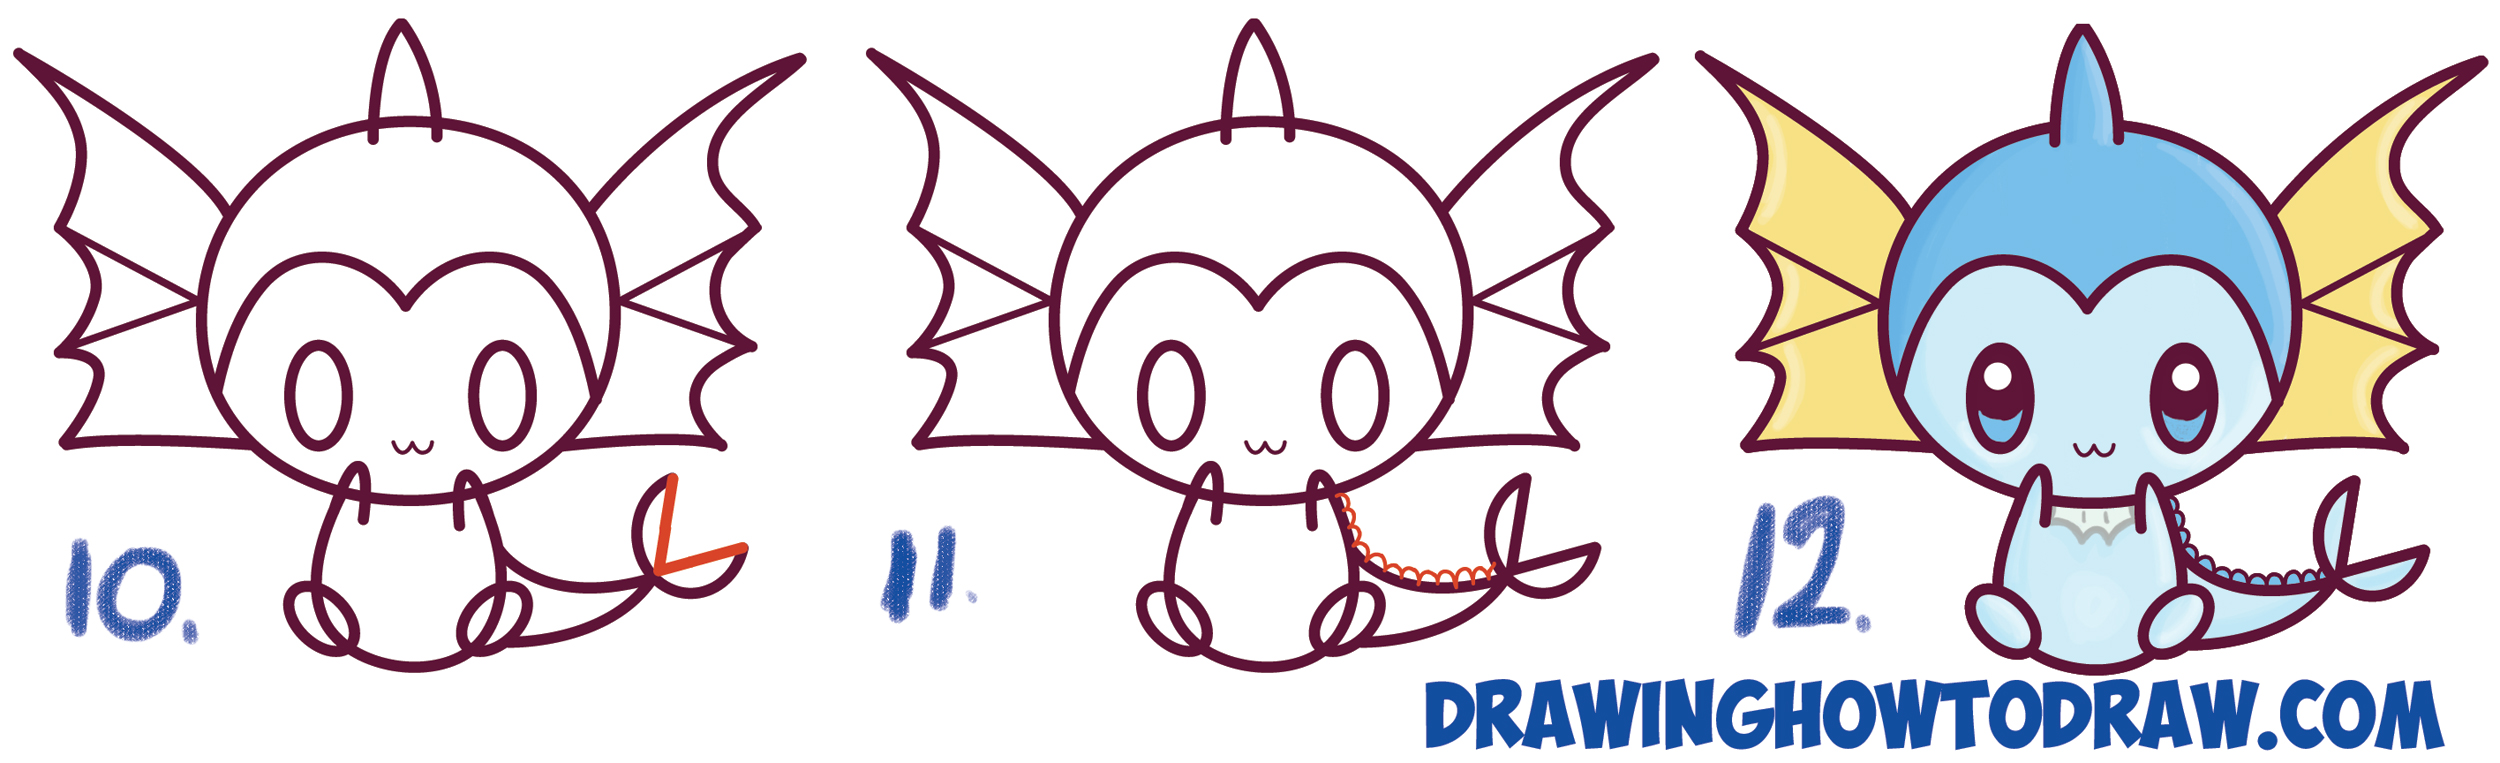 Learn How to Draw Cute Kawaii Chibi Vaporeon from Pokemon Simple Steps Drawing Tutorial for Kids